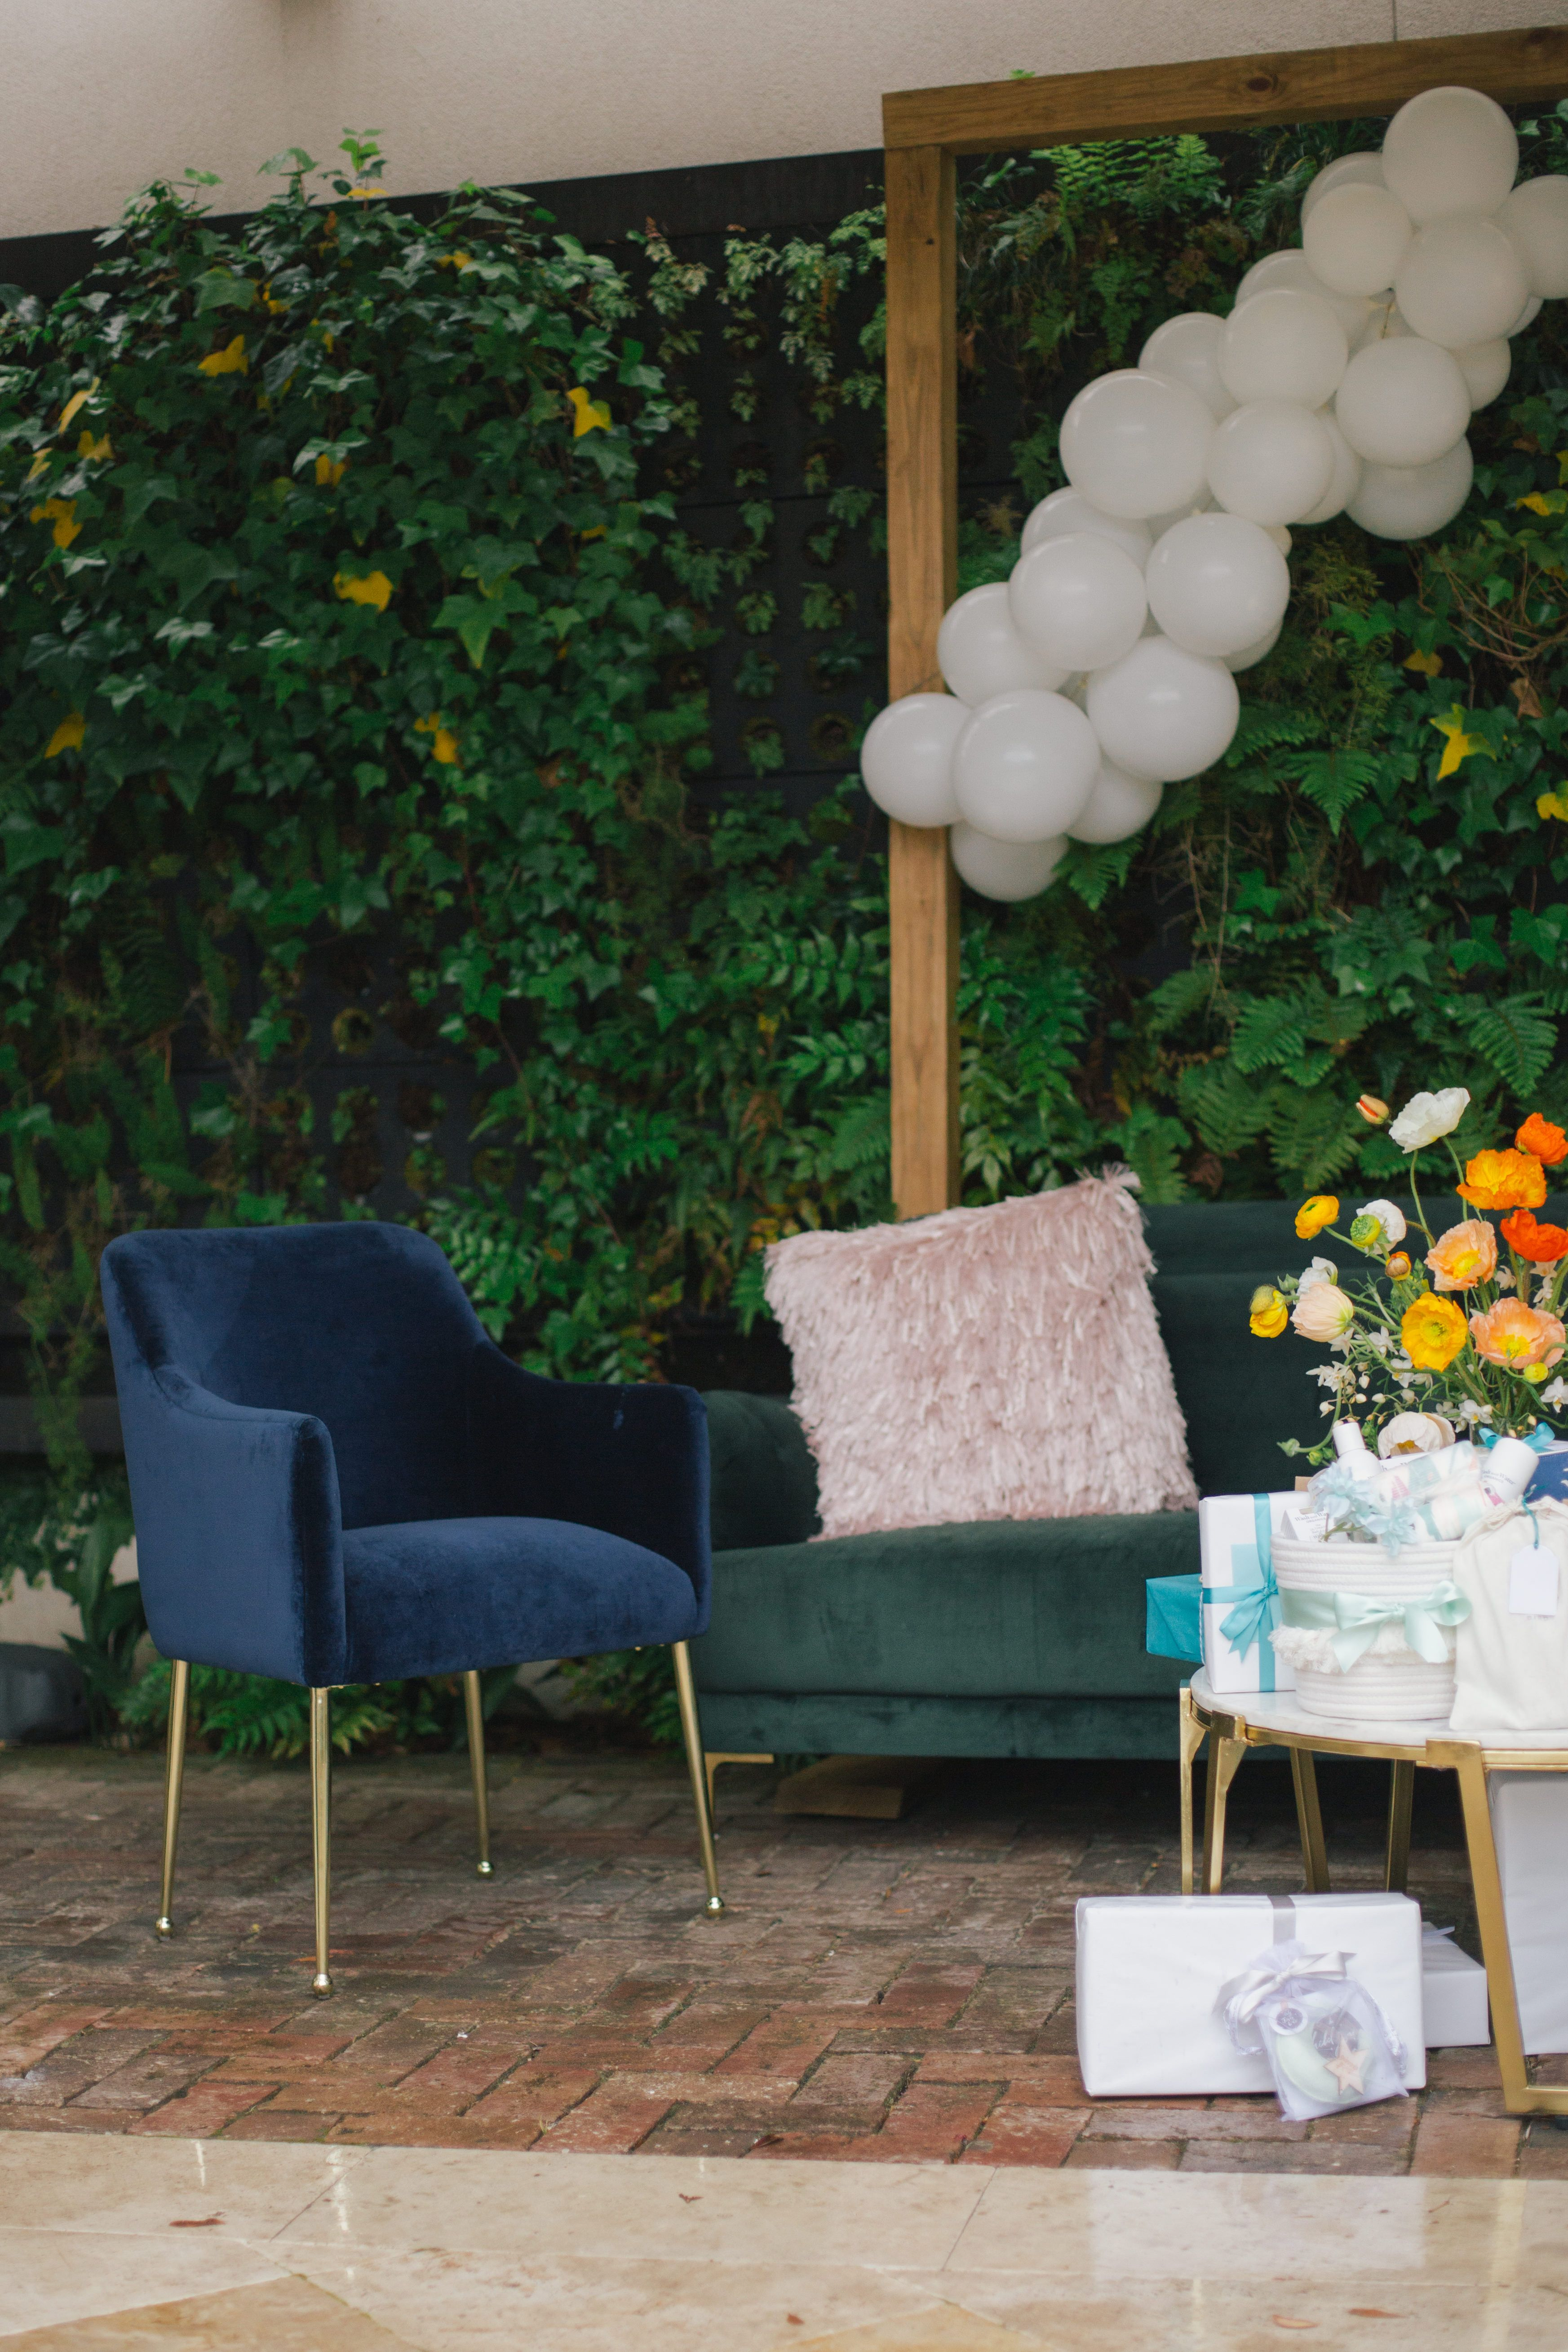 Modern Decor For A Sophisticated Baby Shower At Cannon Green In Charleston S C